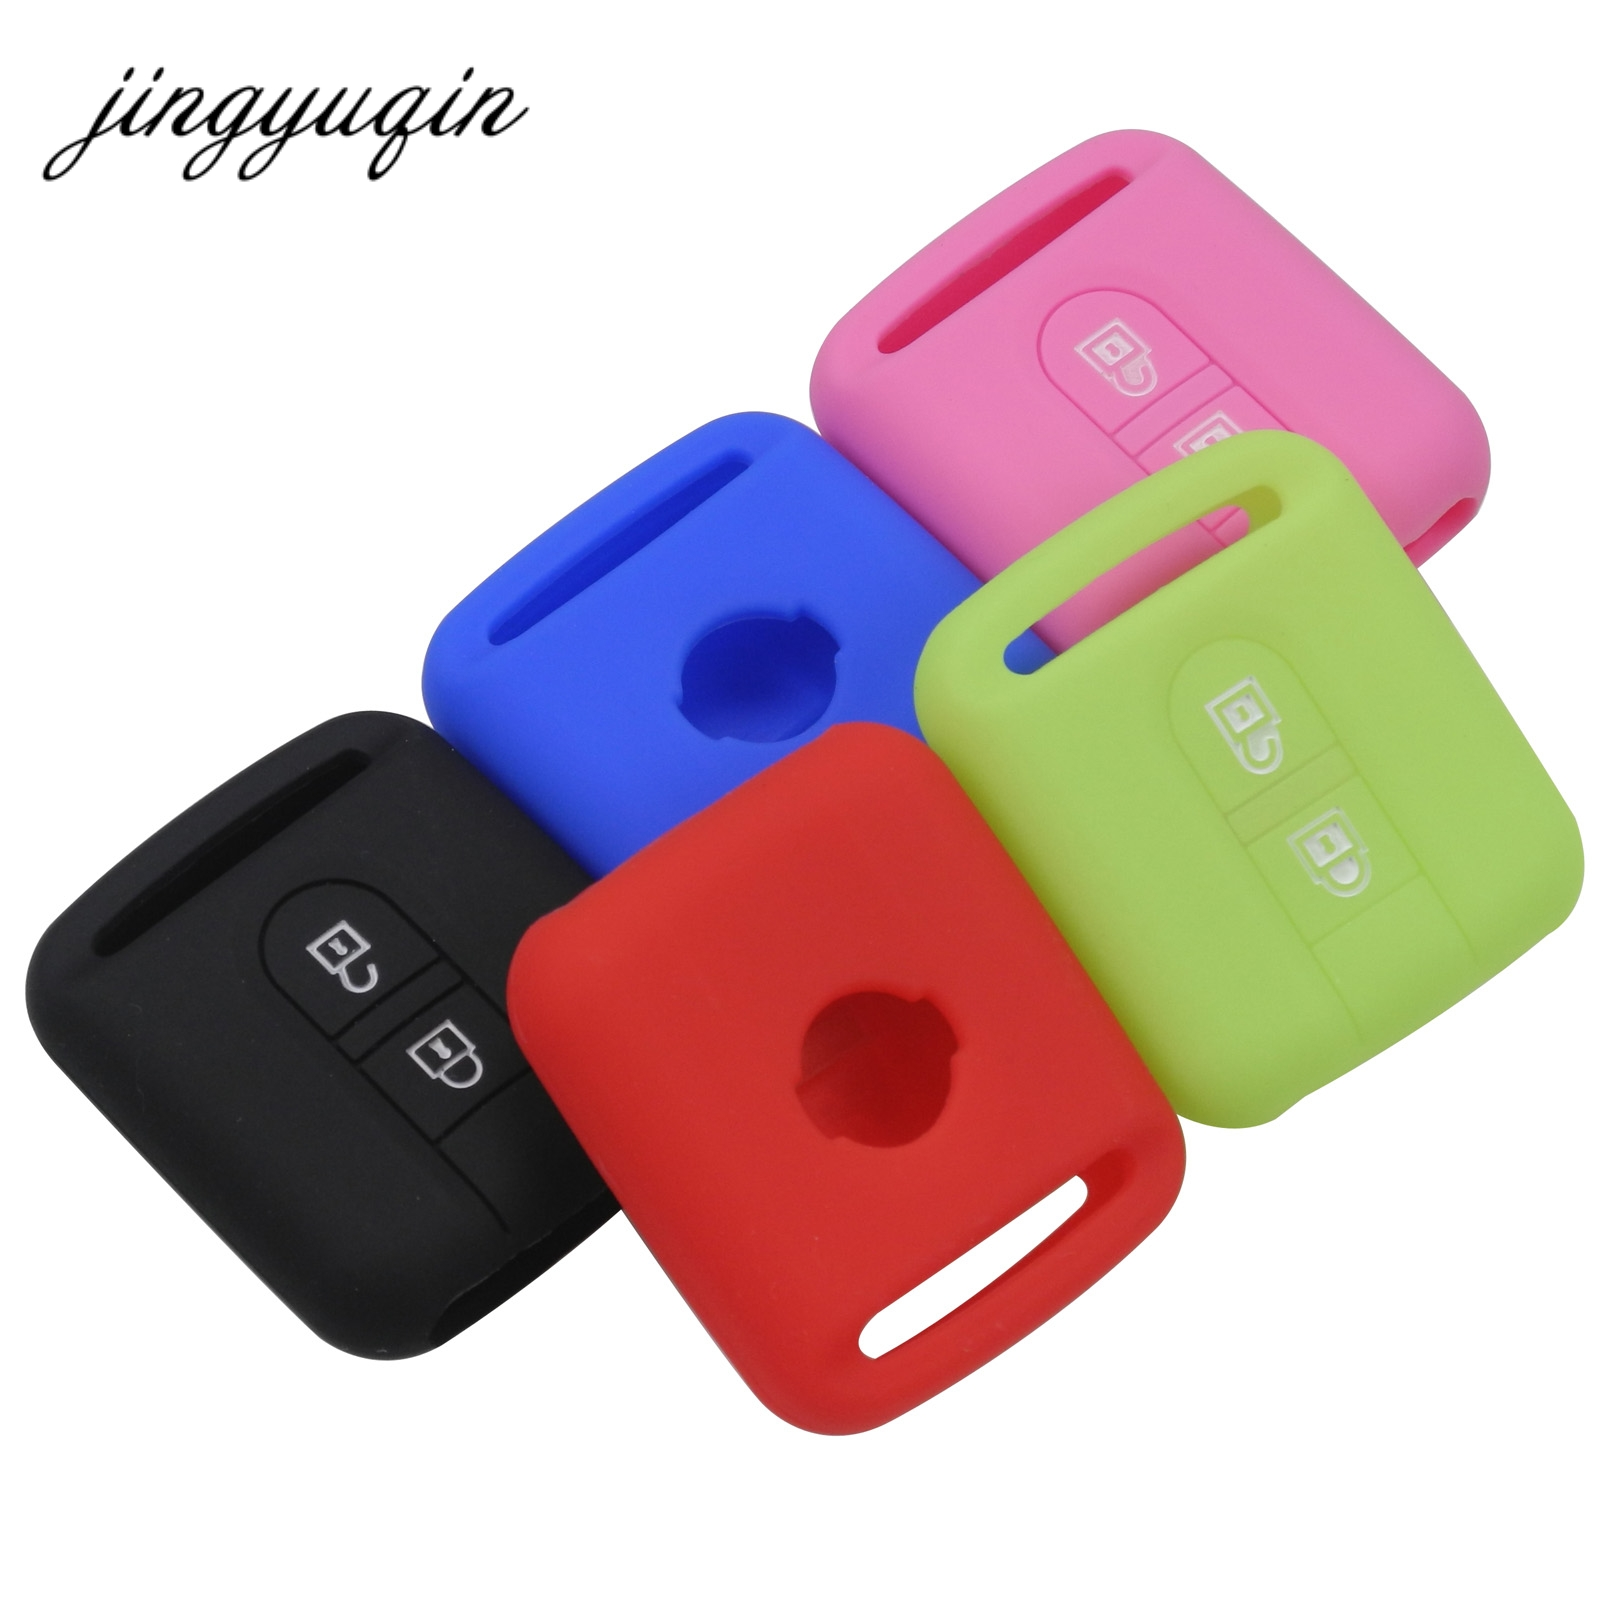 Car Key Shell Silicone Key Protector Case Cover 2 Button for Nissan Black